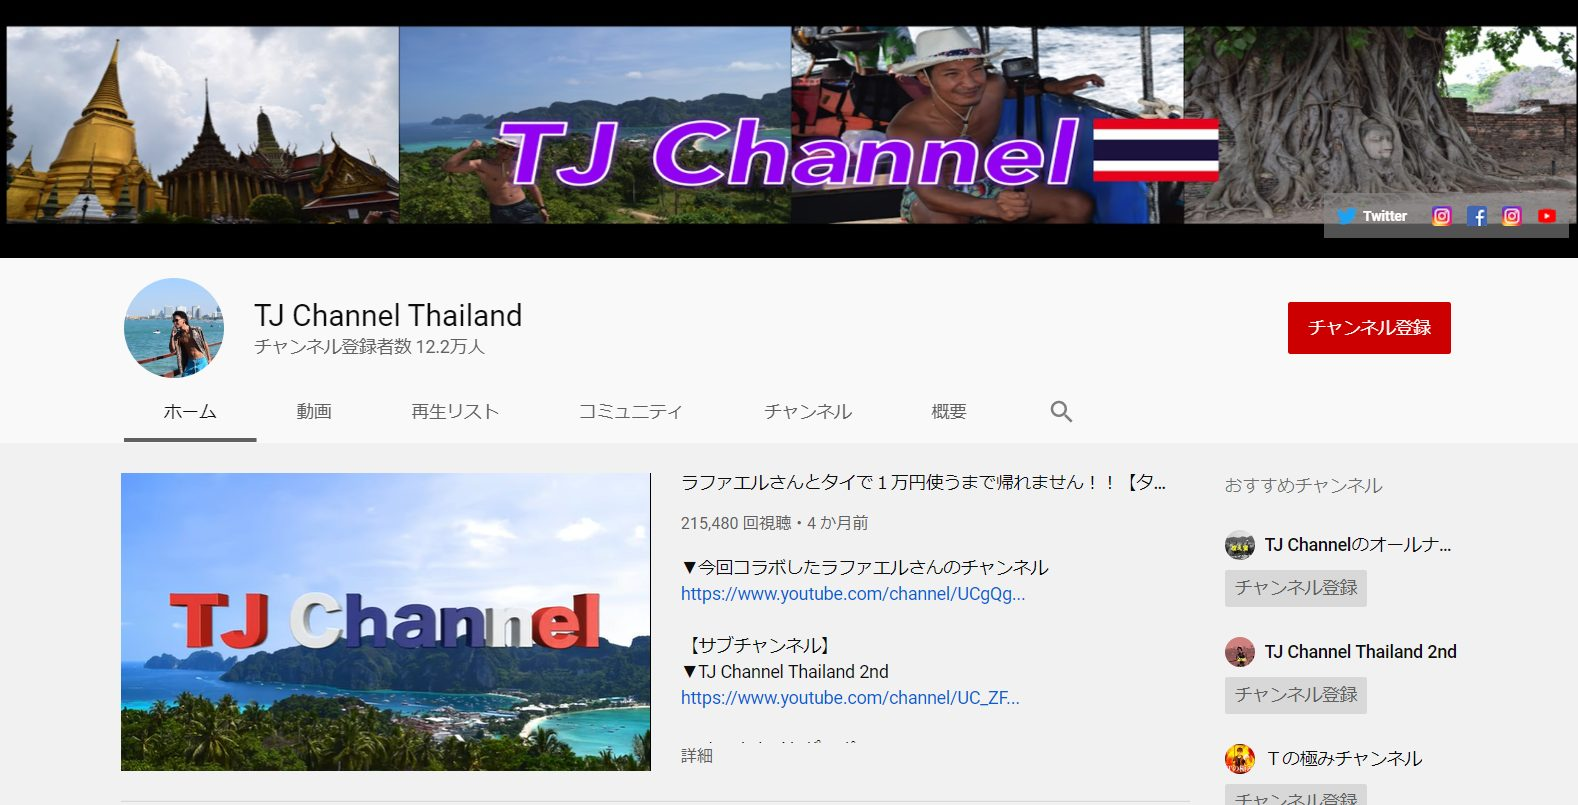 youtube-travel-influencer-tj-channel-thailand